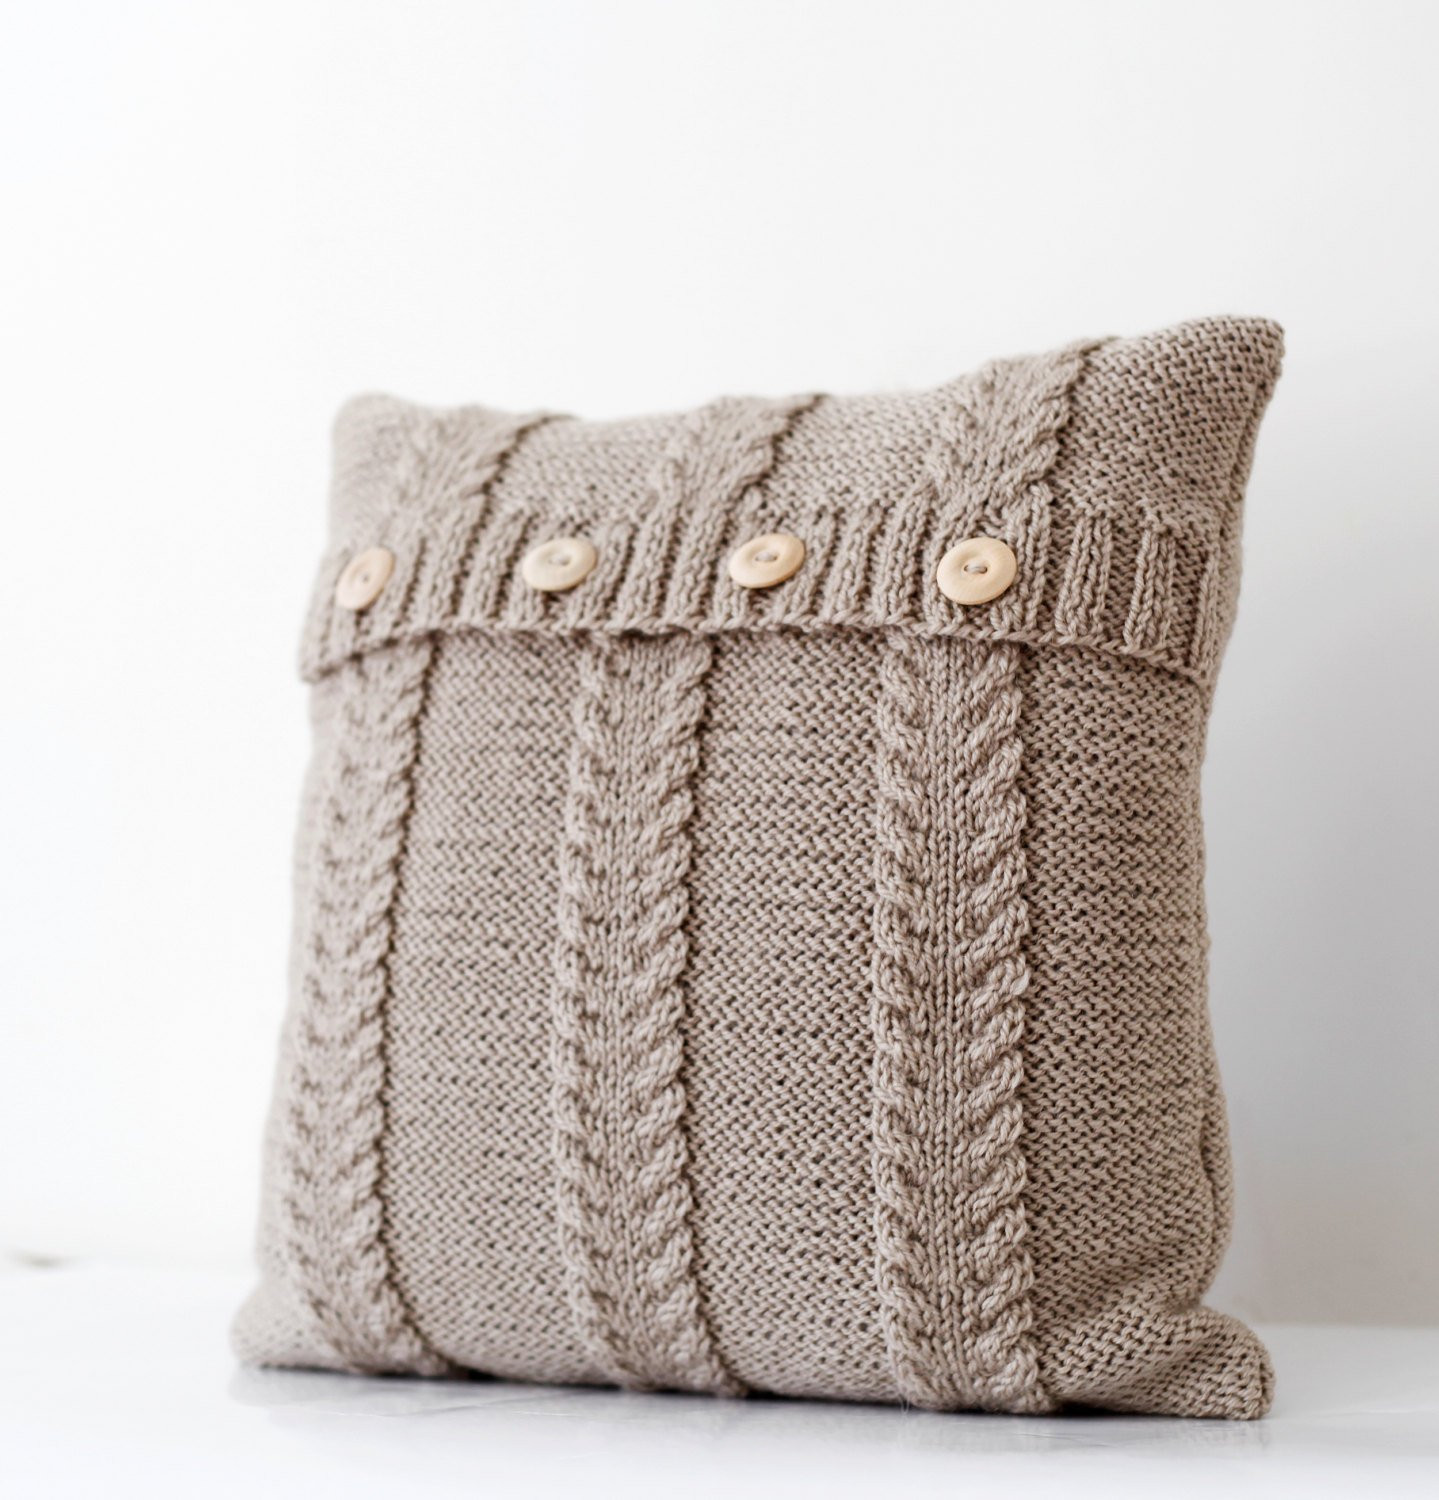 Knit Pillow Best Of Cable Hand Knitted Beige Pillow Cover Handmade Decorative Of Charming 46 Pics Knit Pillow